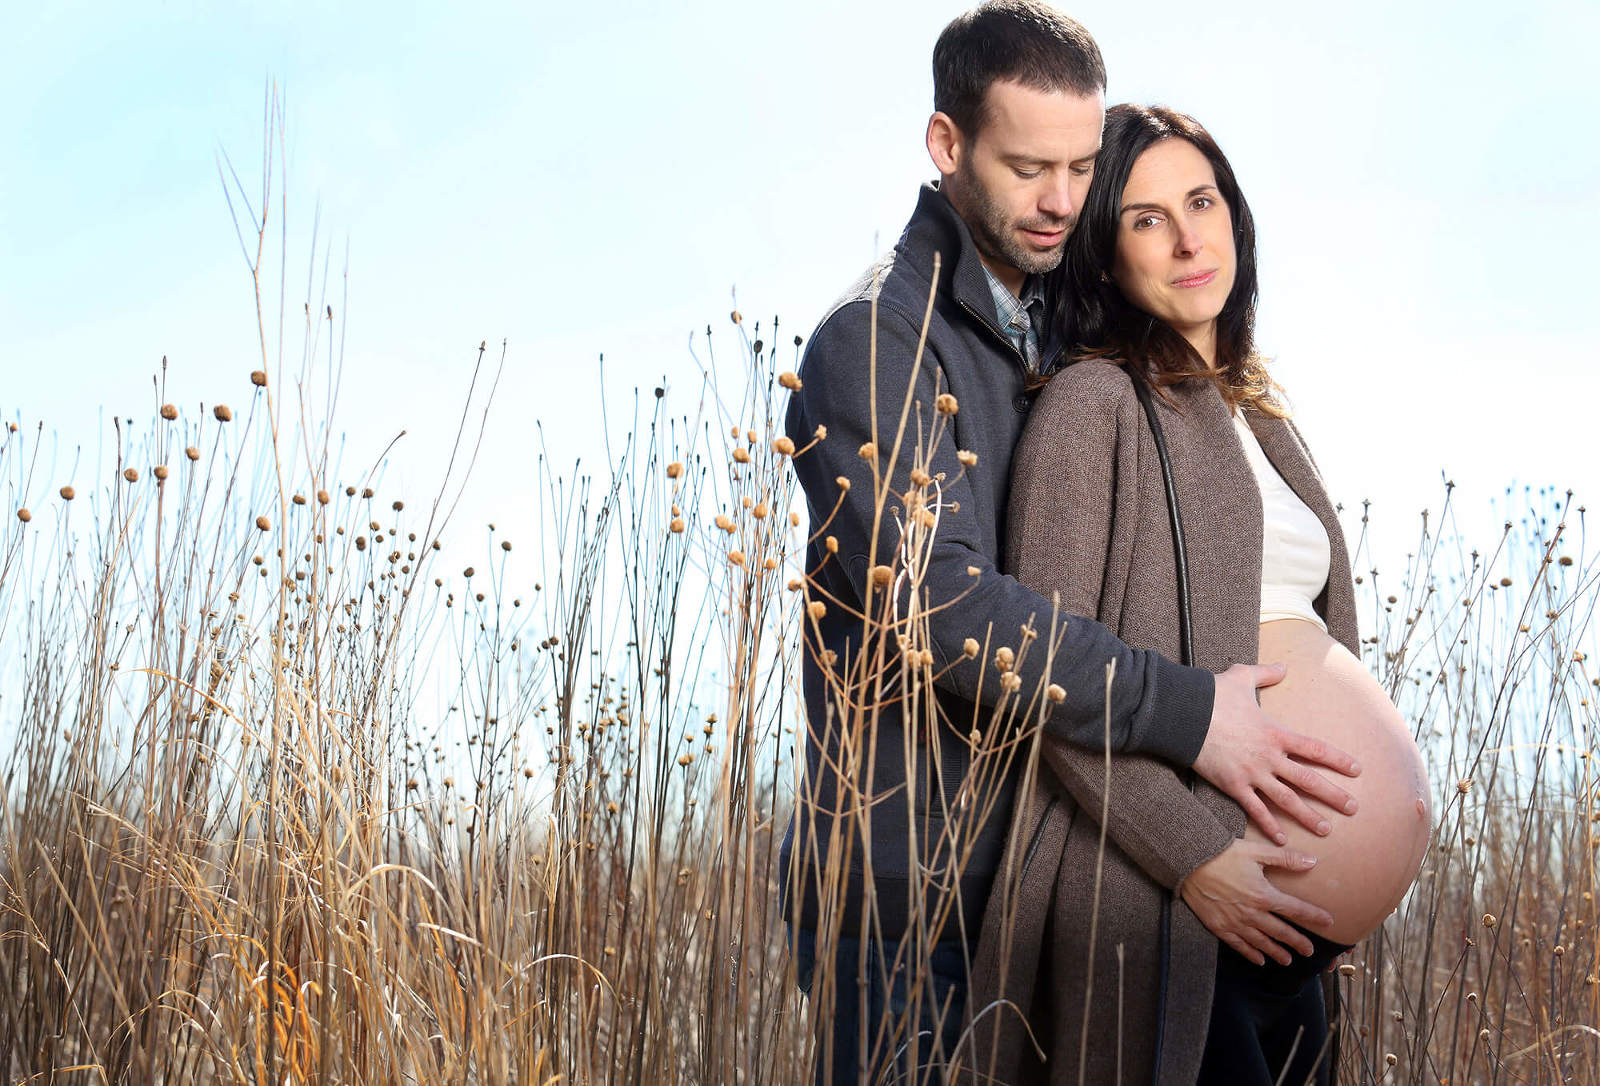 Chicago pregnancy portraits photographer 86